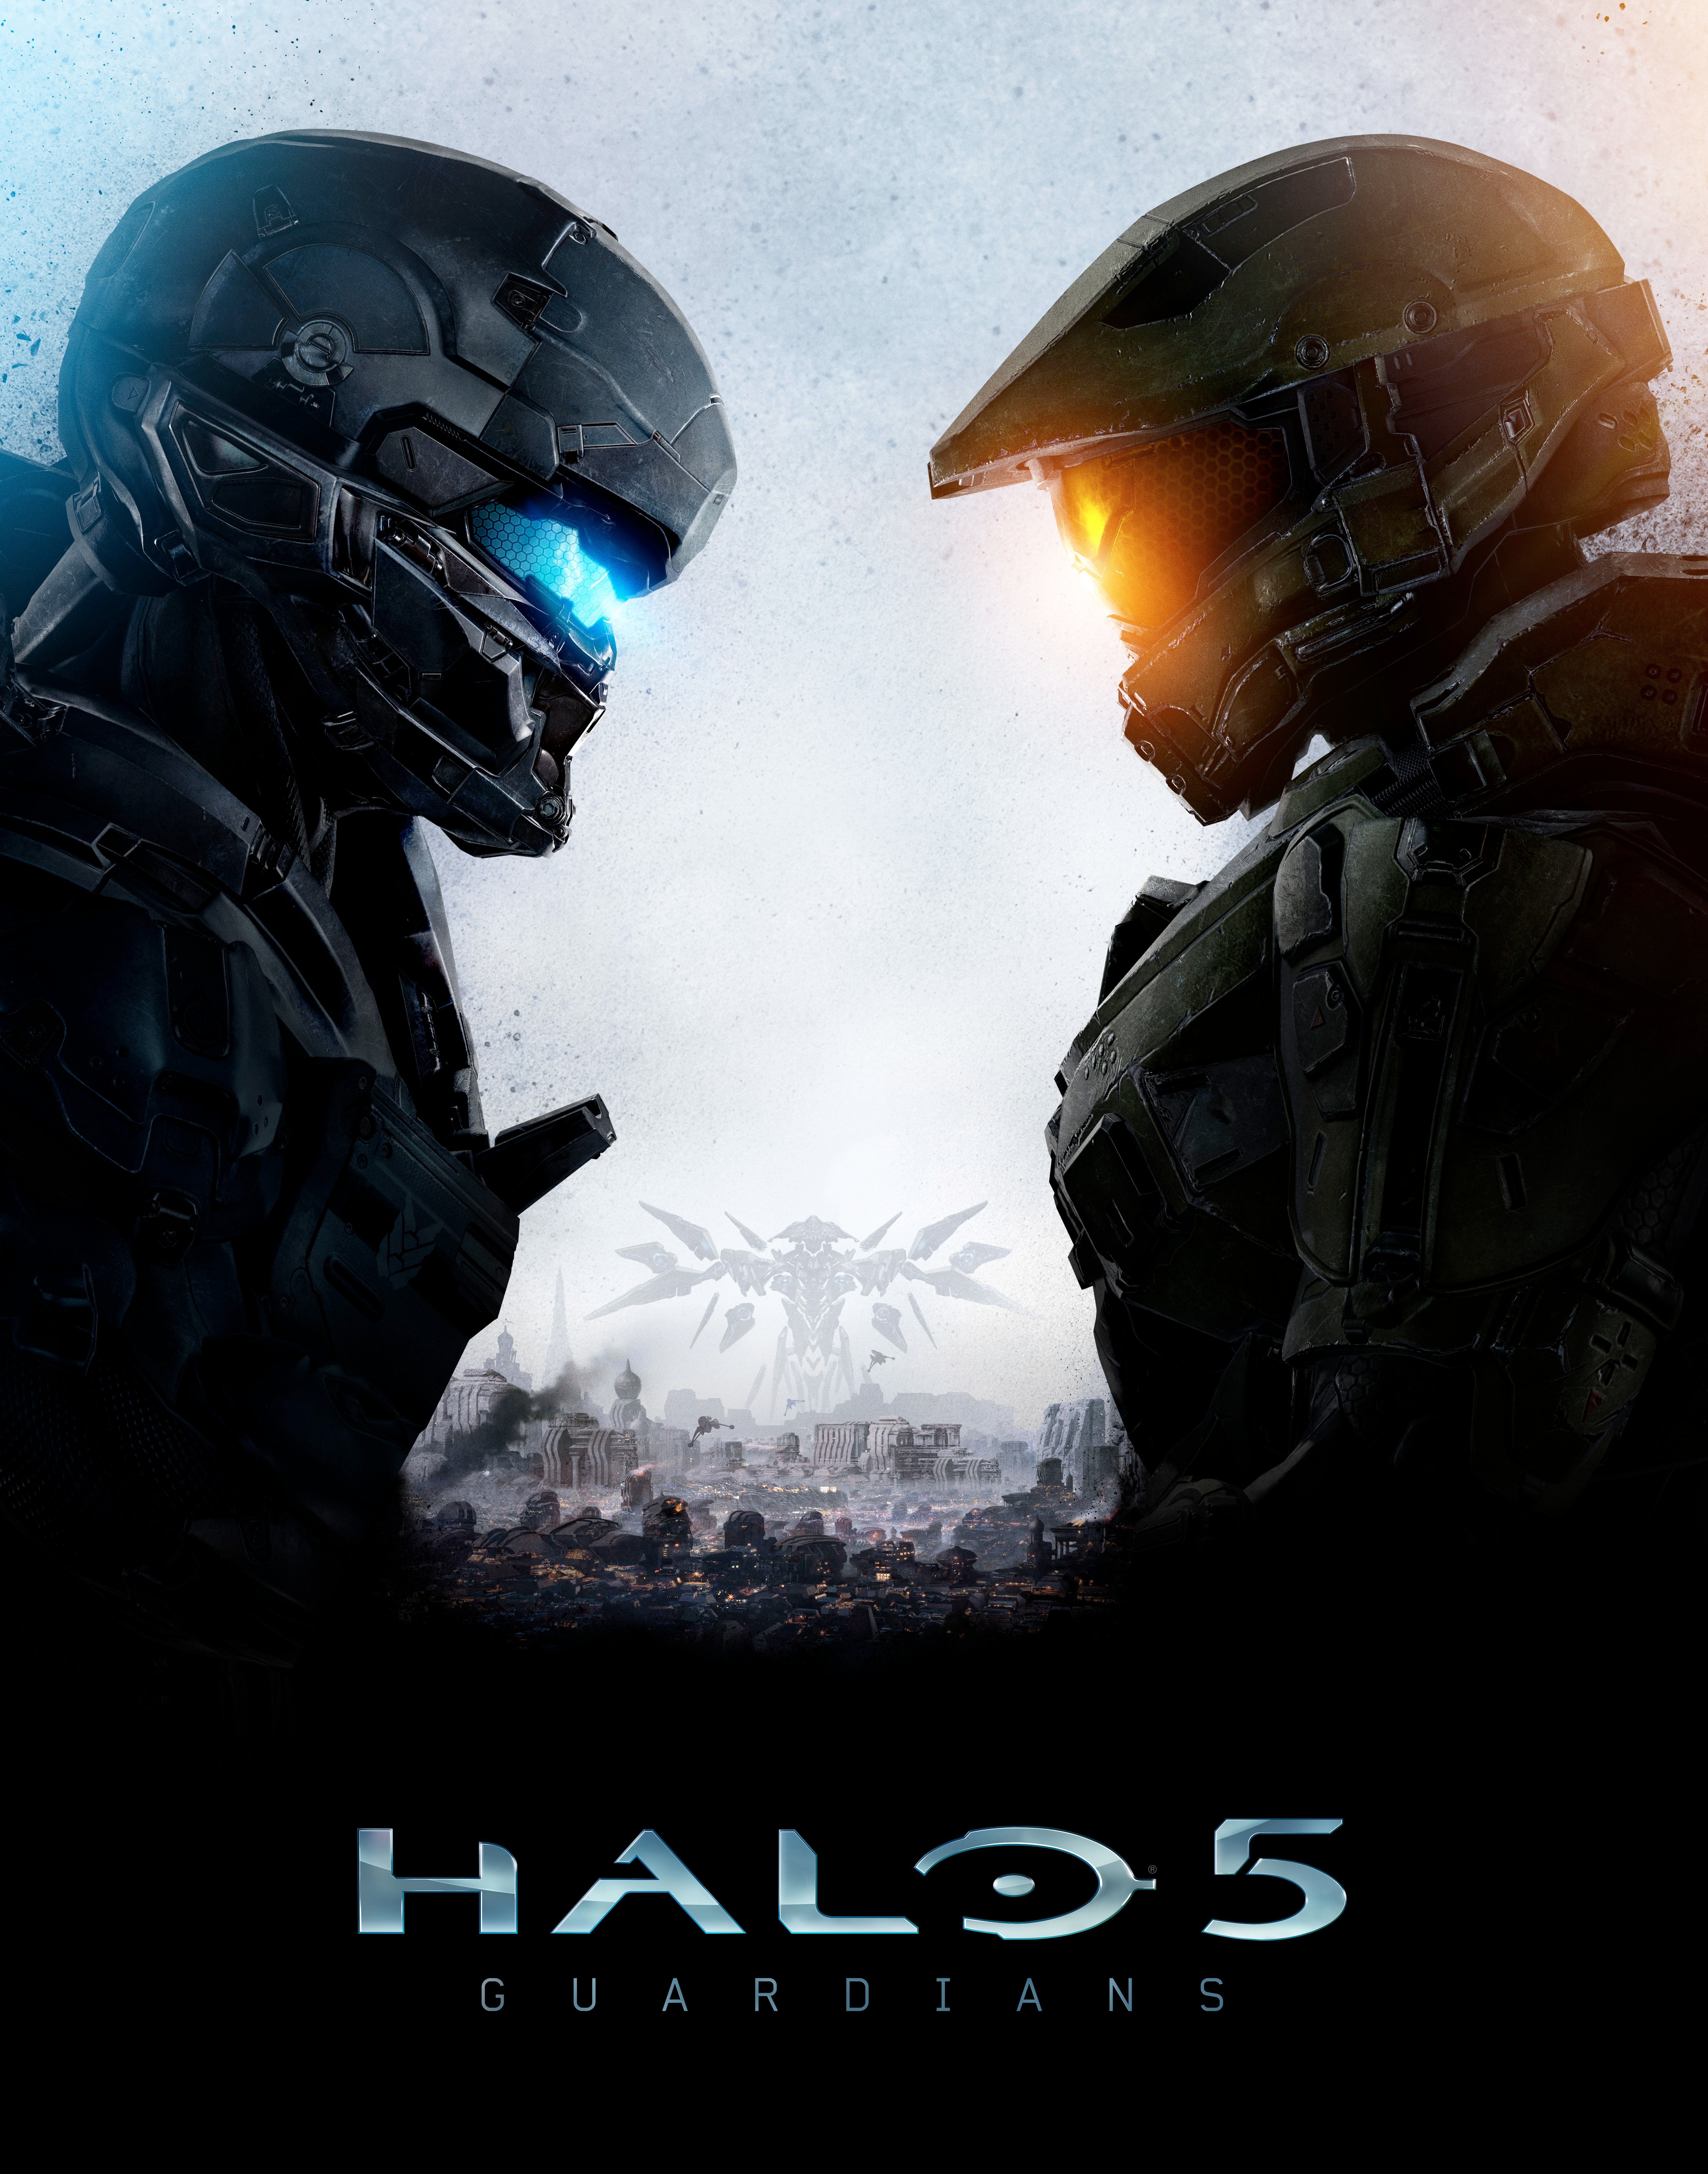 Box art - Halo 5: Guardians